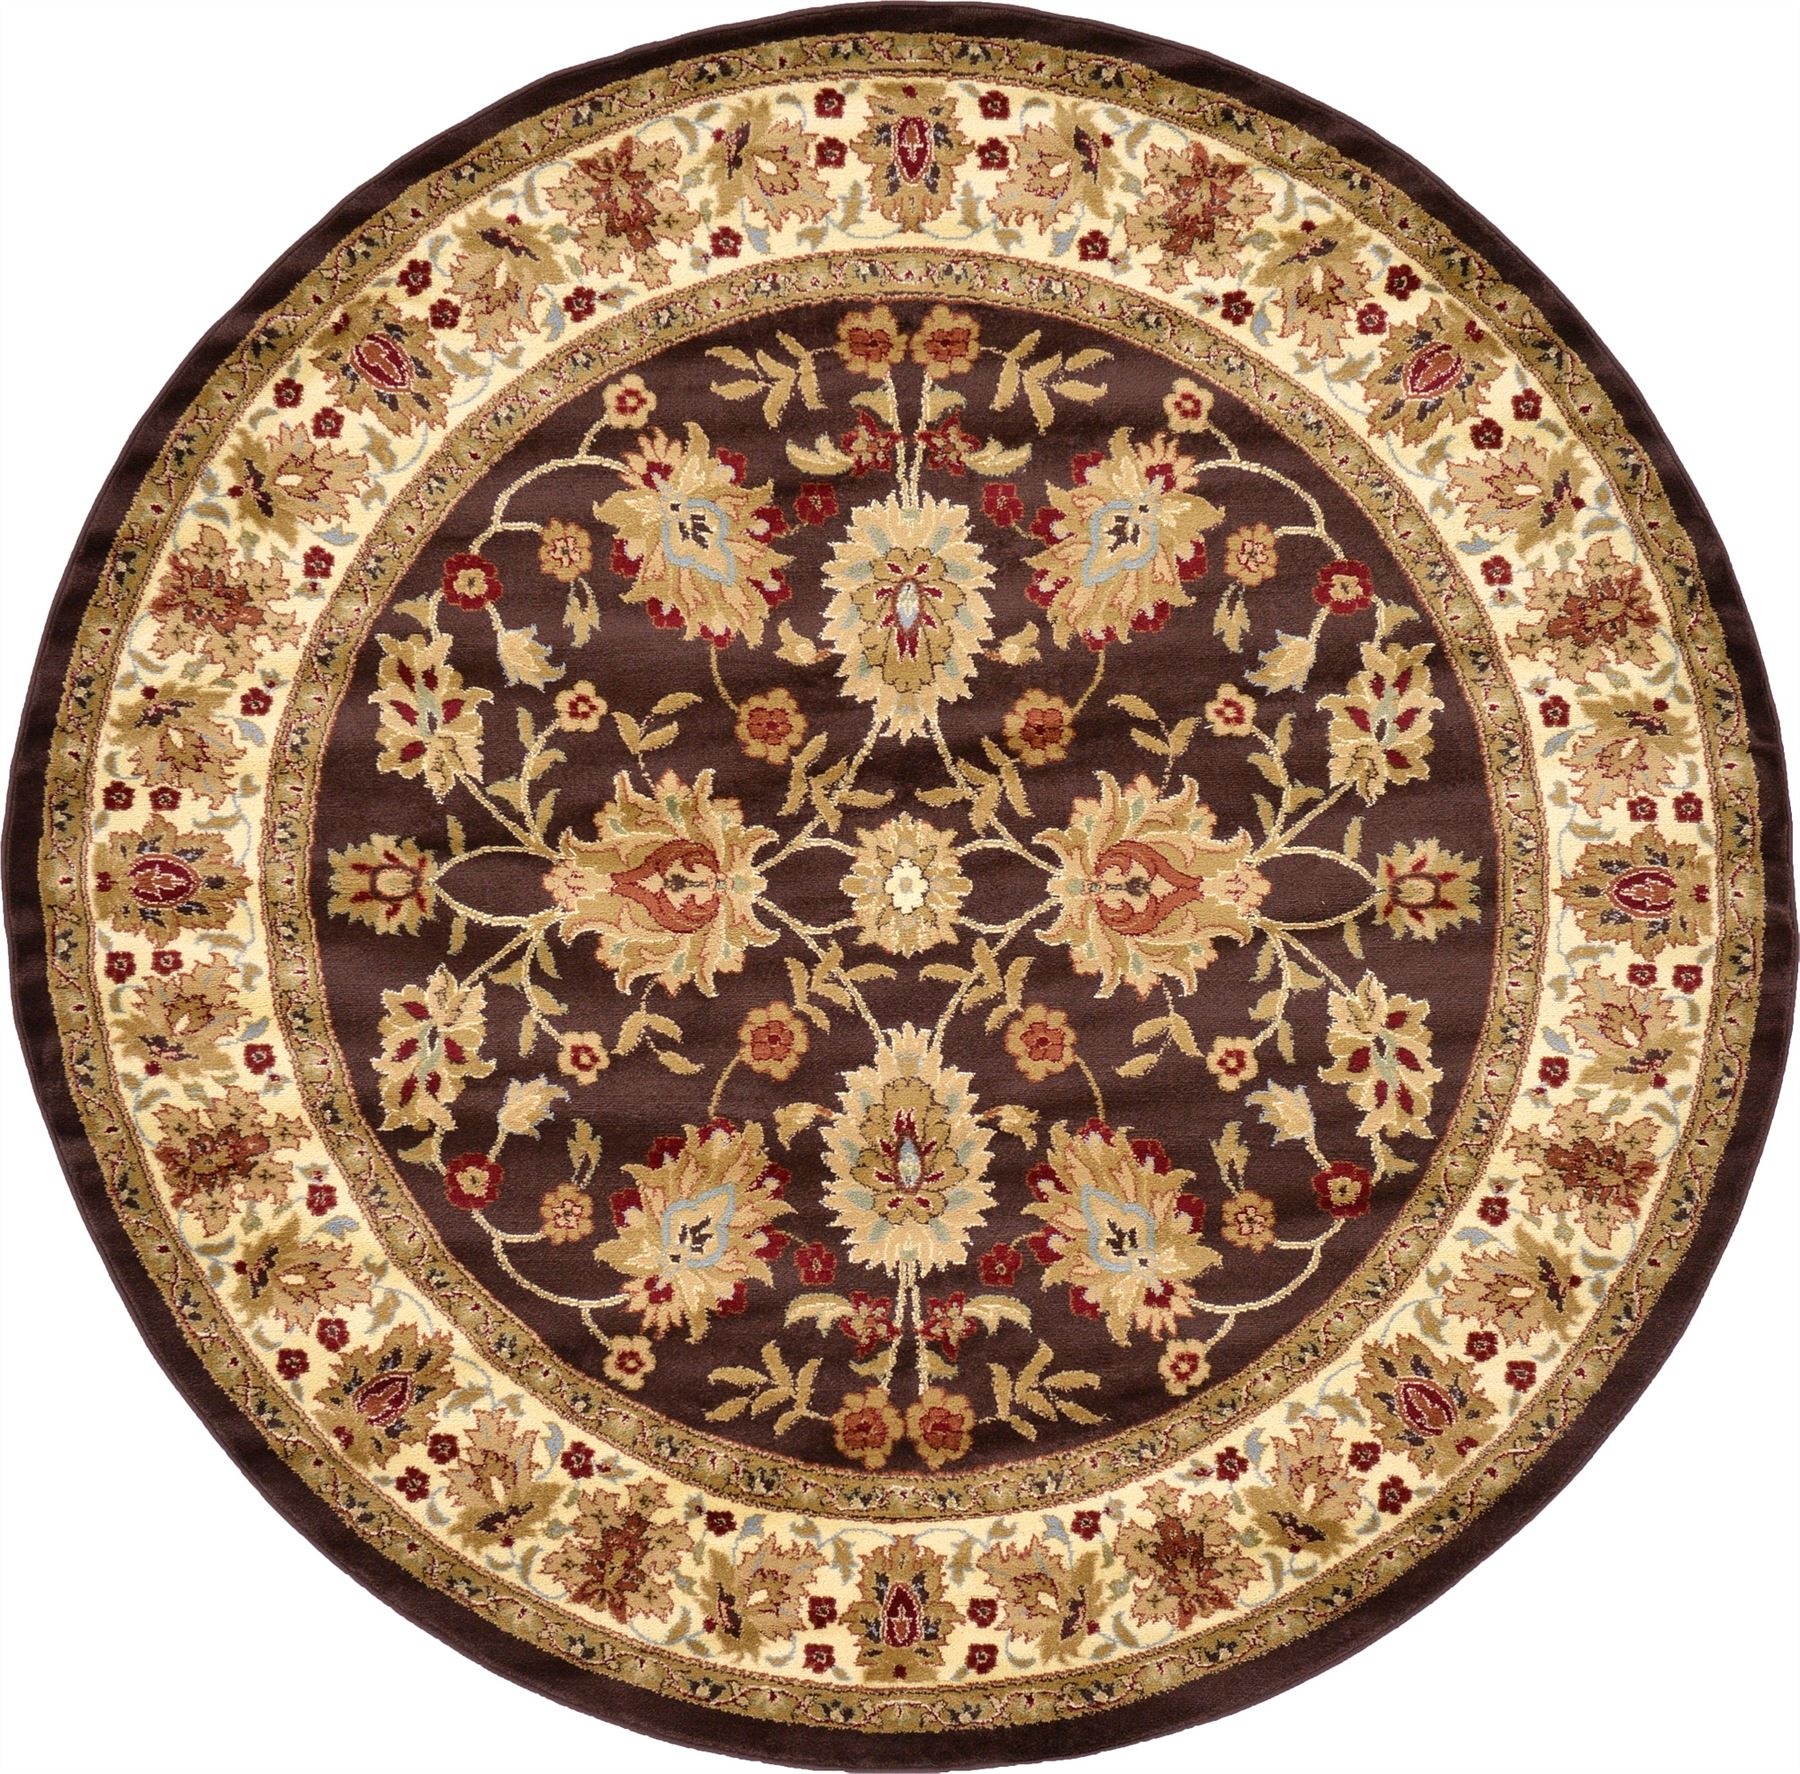 Traditional rug oriental area rug runner round rug persian for Area carpets and rugs